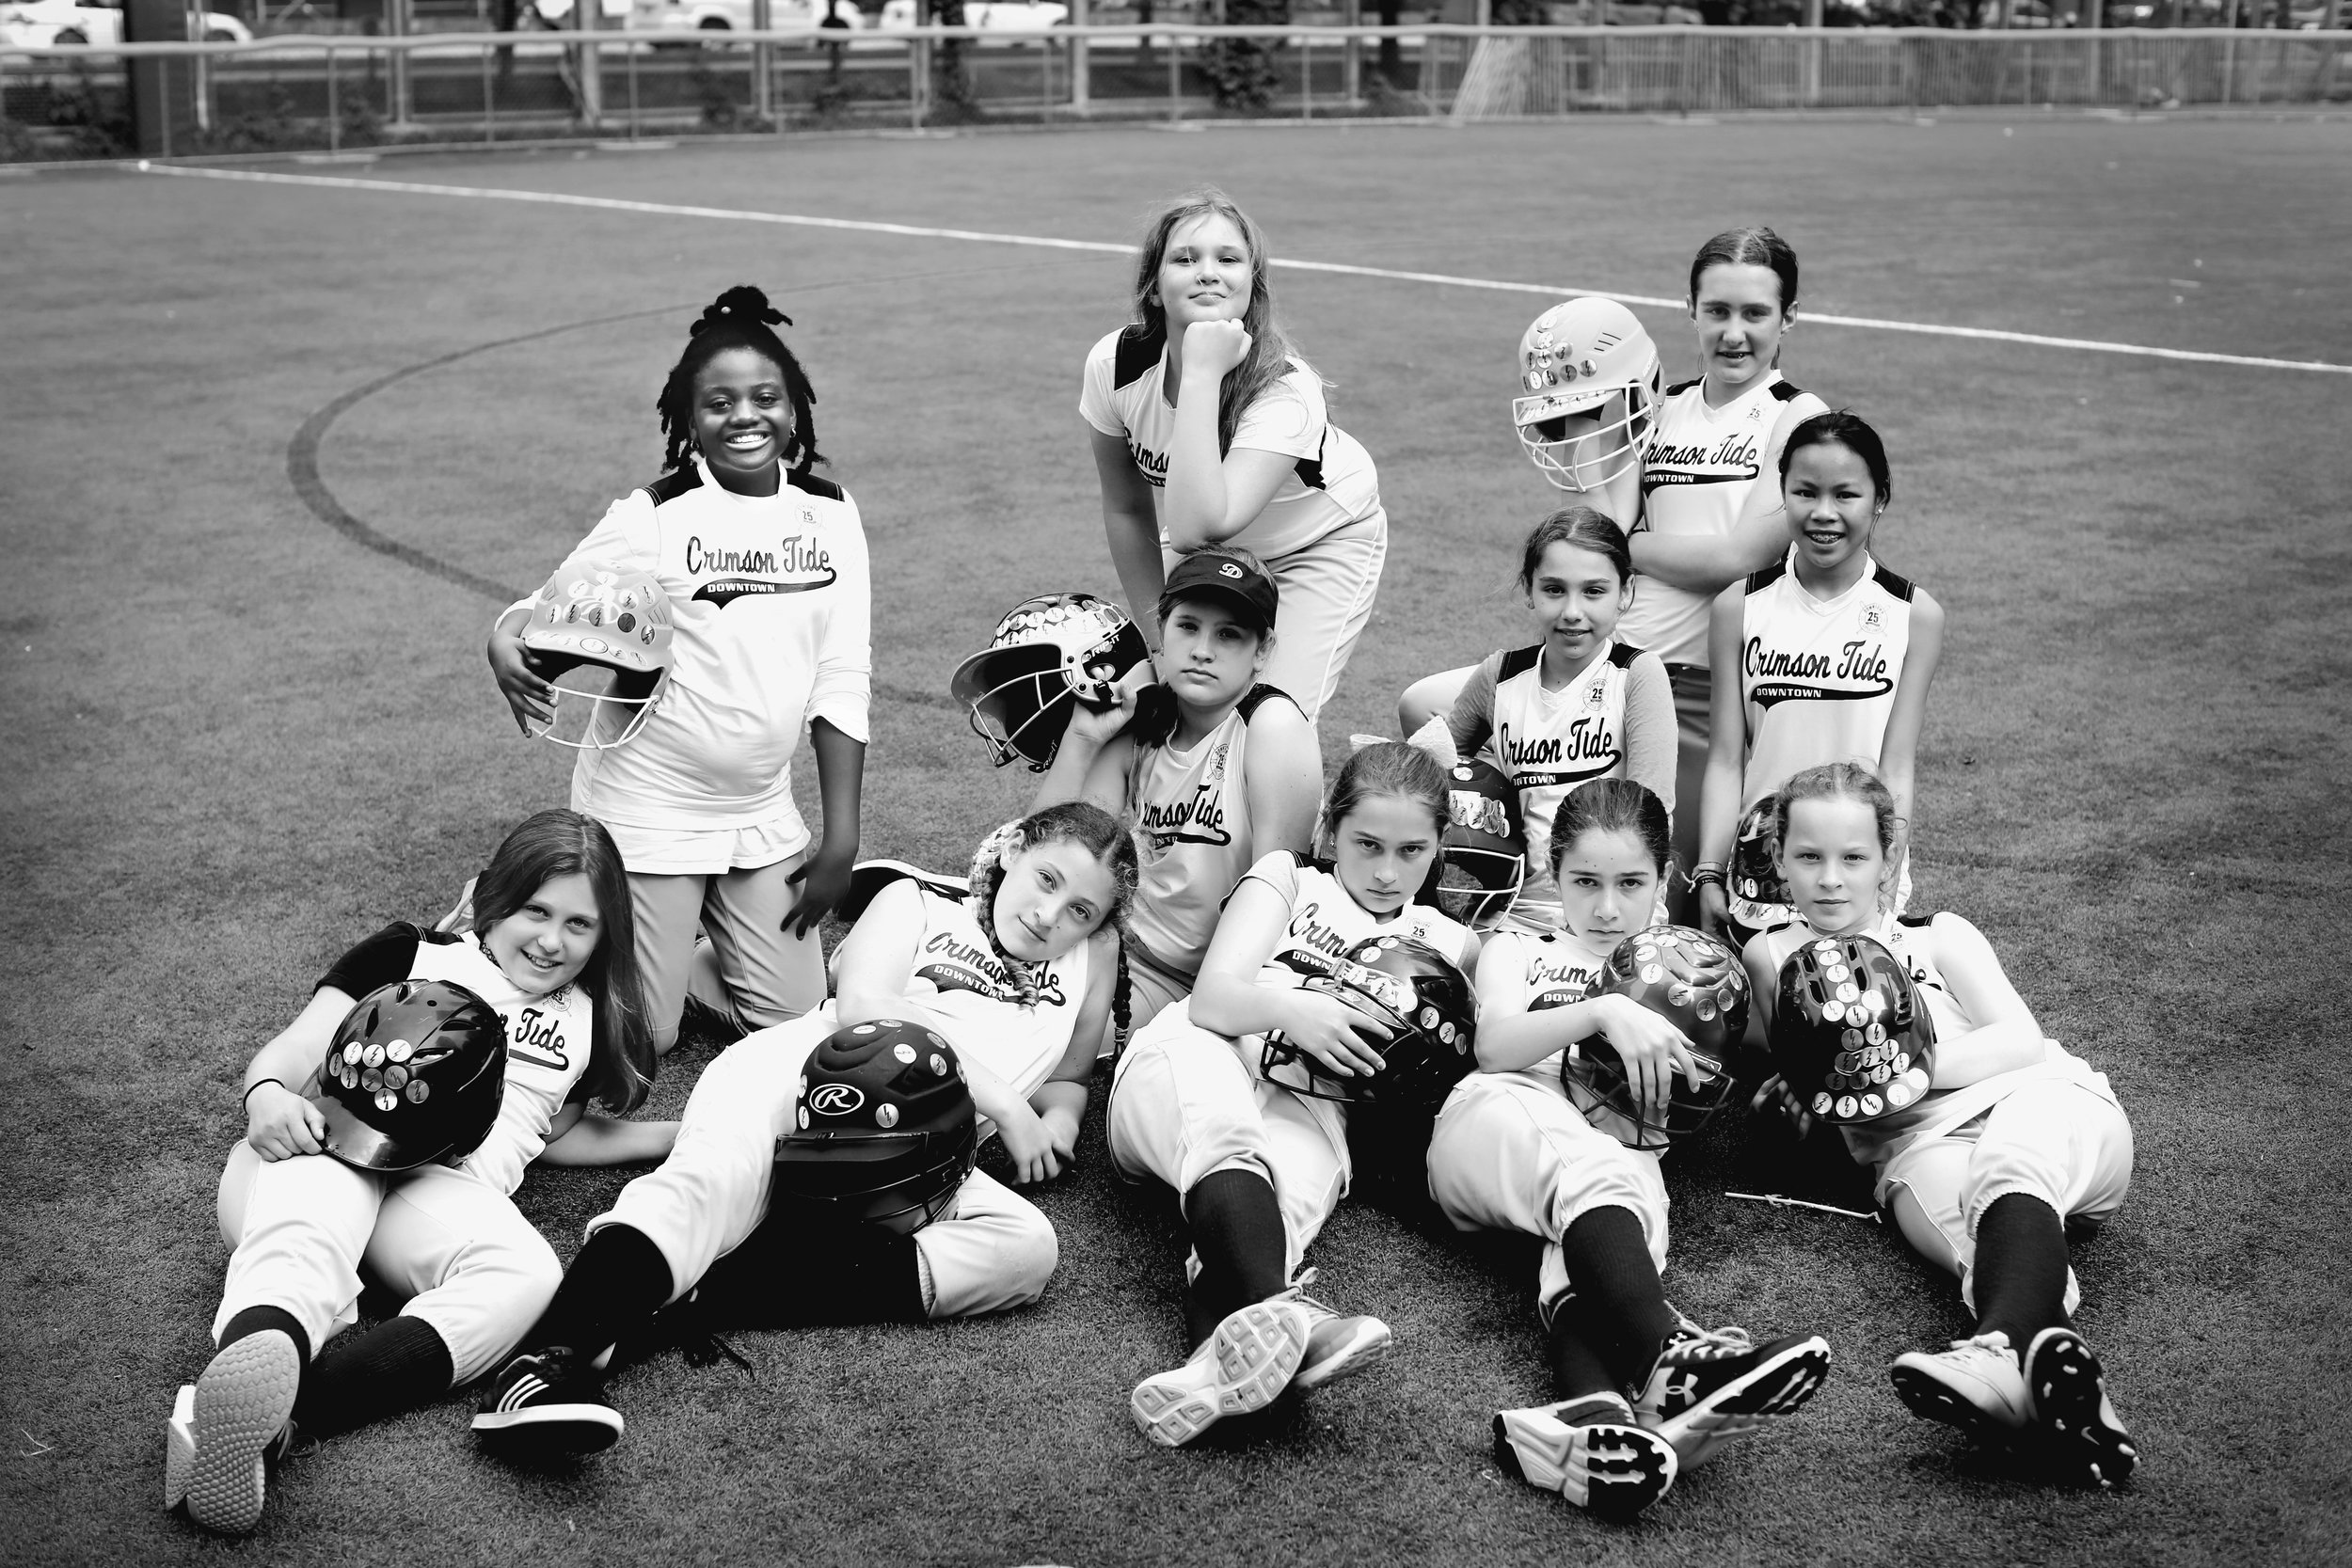 7W1A0043_tide_softball_ritathompson_b&w.jpg